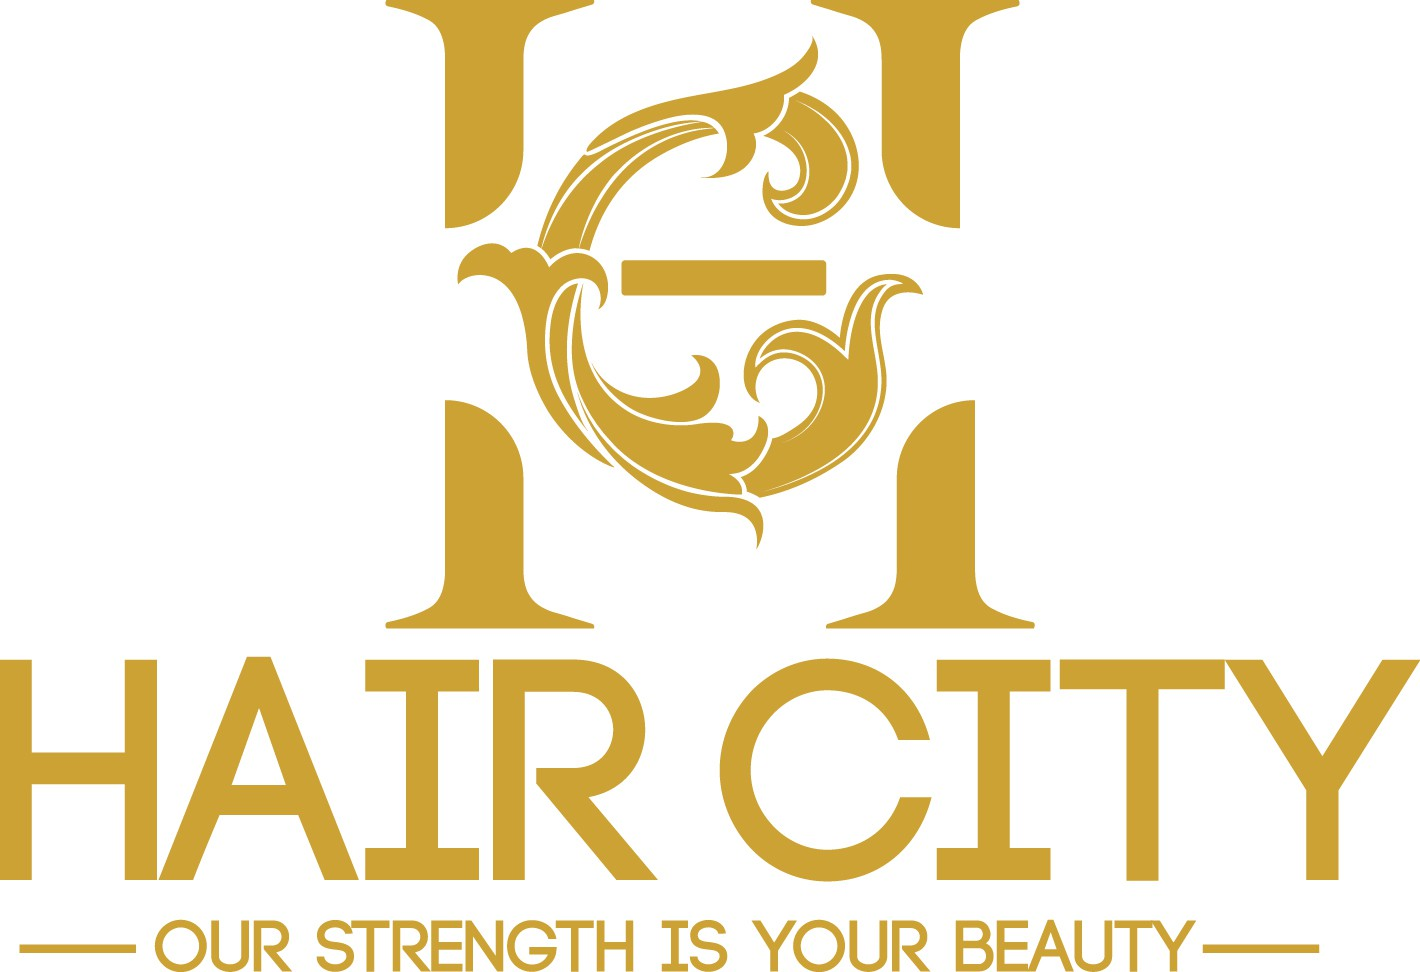 Need eye catching logo for hair extensions business